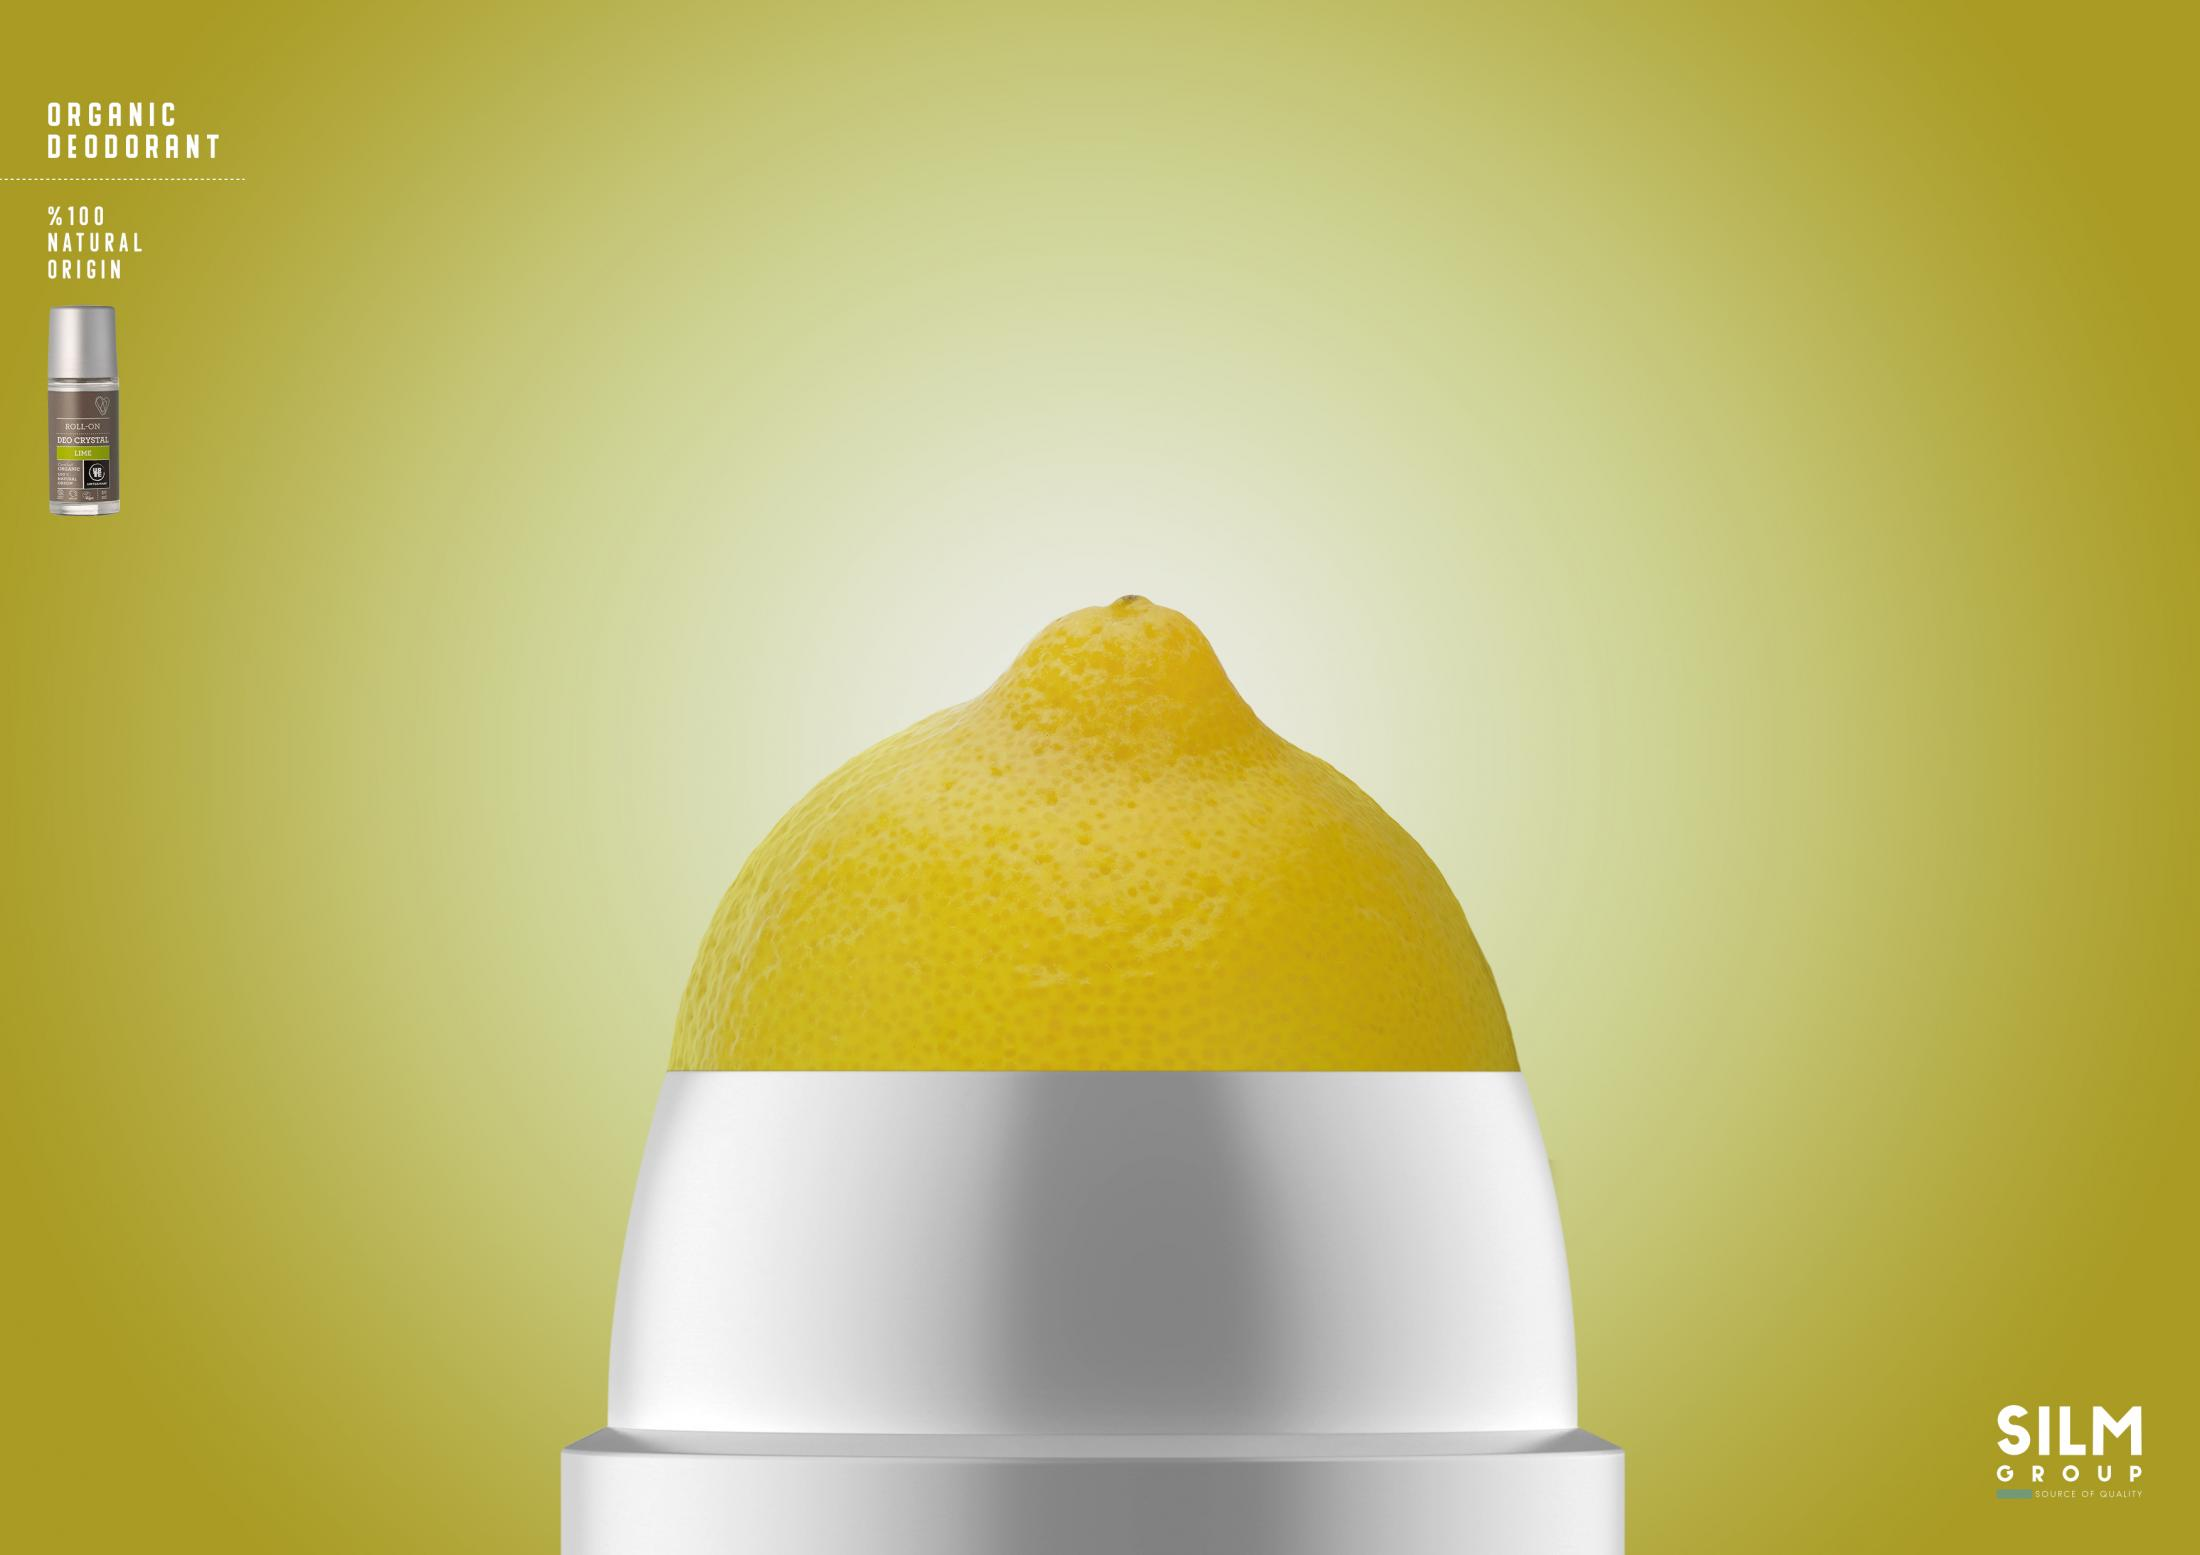 Silm Group Print Ad - Organic Deodorant - Lime